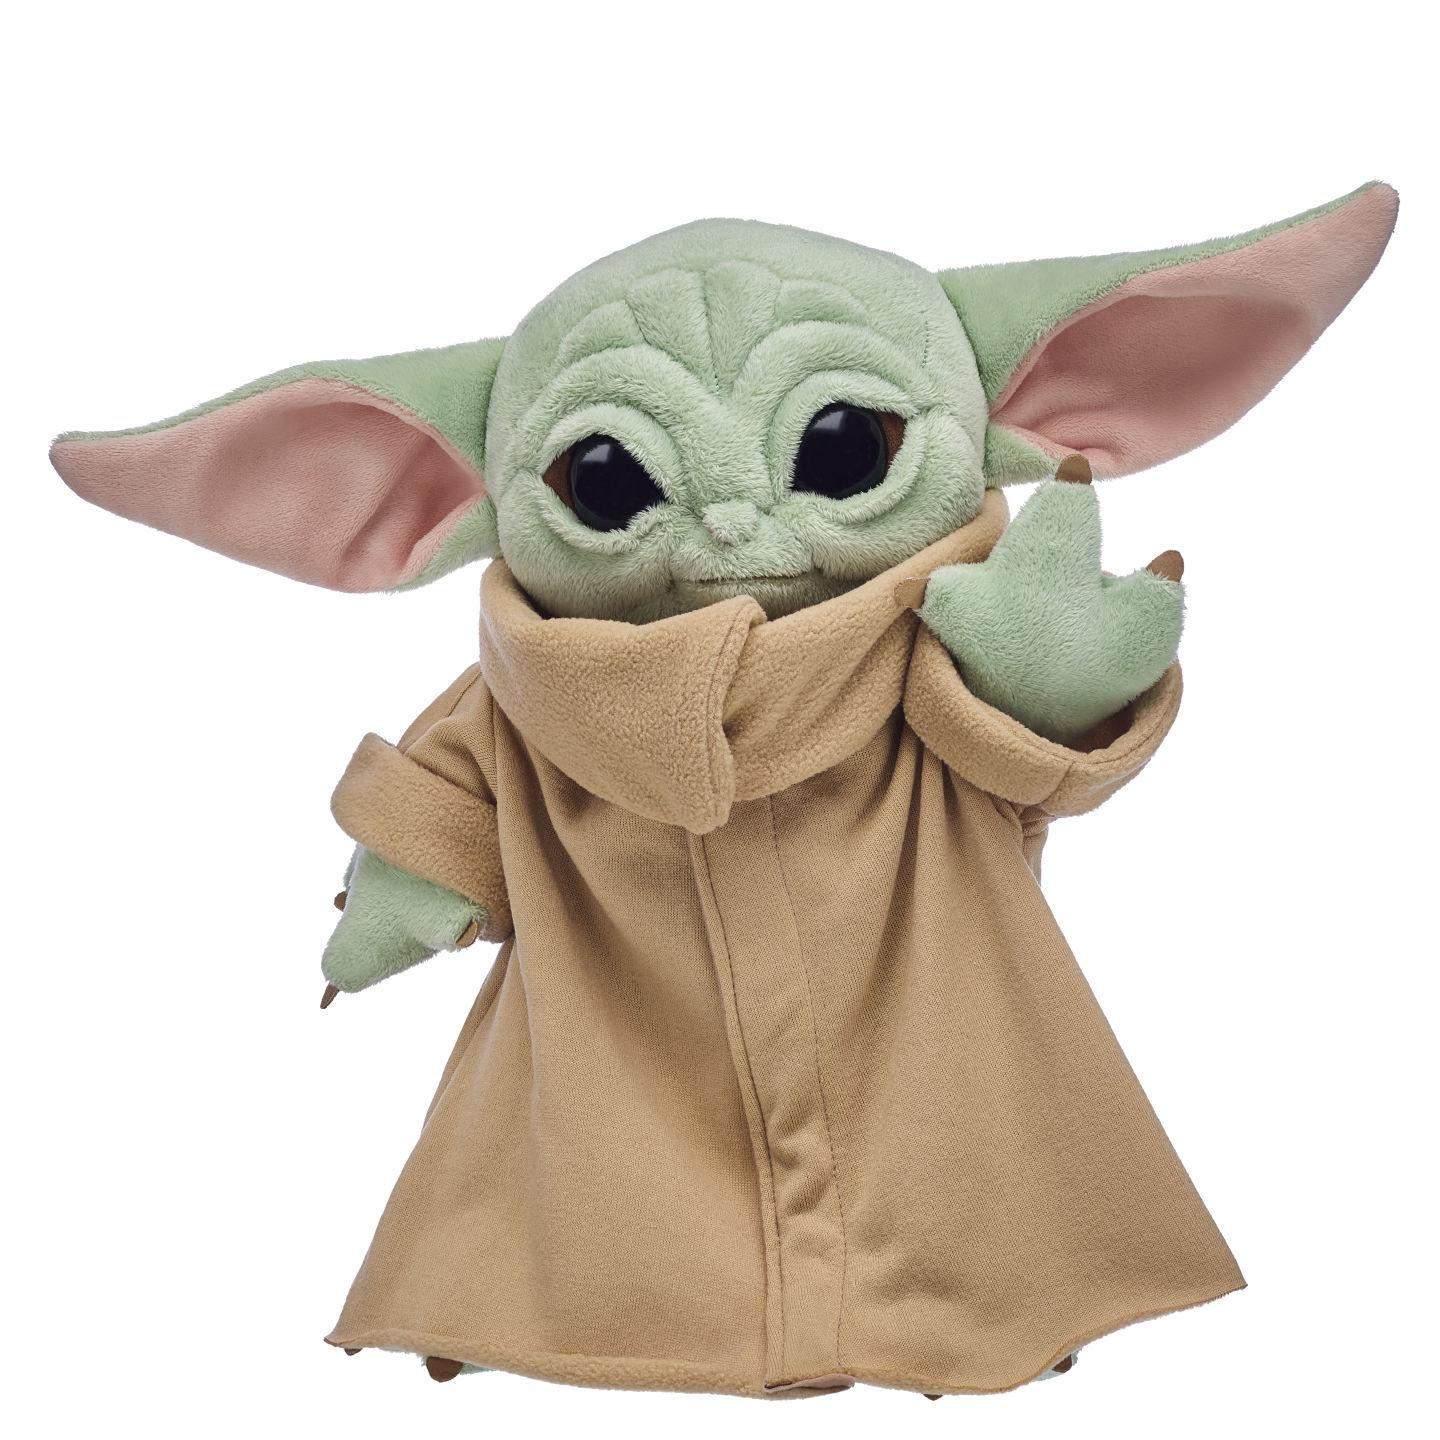 Build A Bear S Baby Yoda Sells Out In Two Hours Local Business Stltoday Com